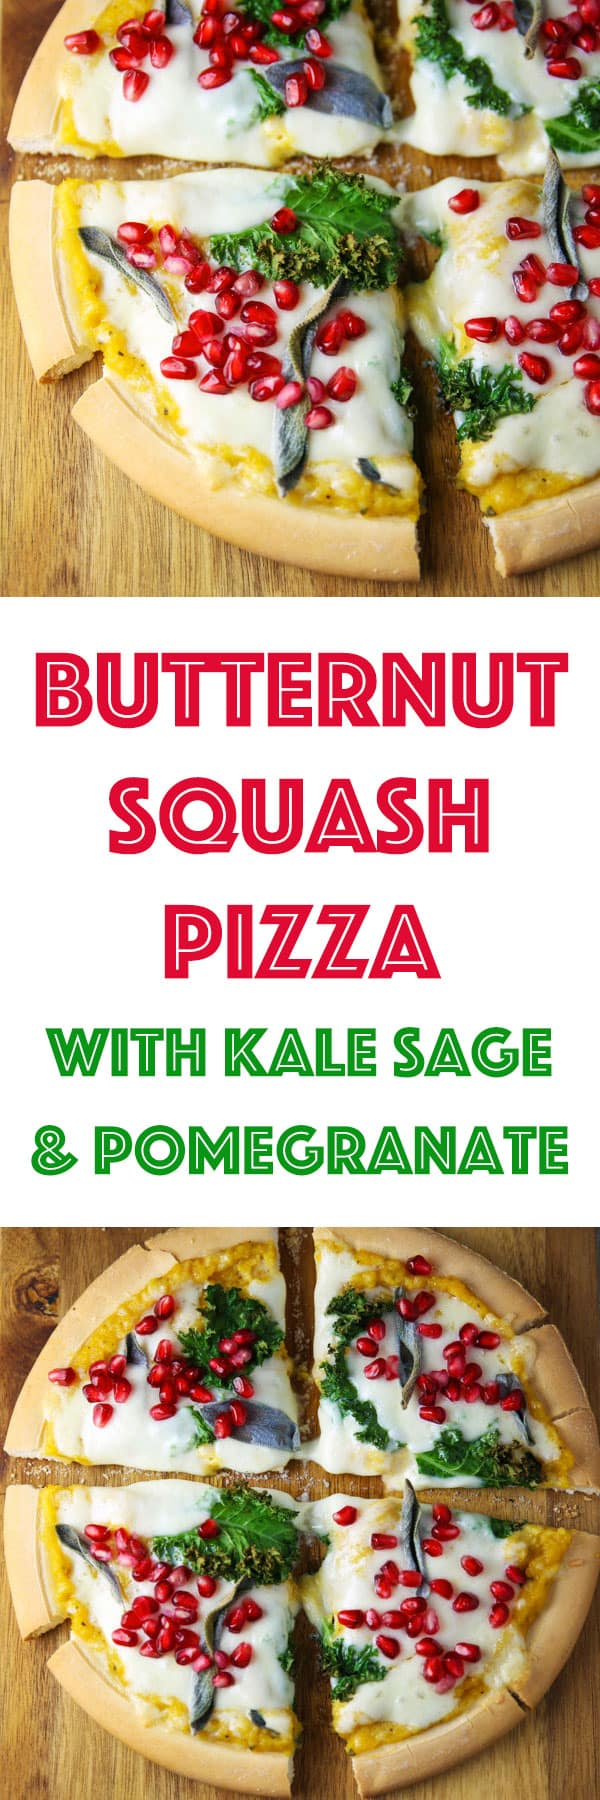 This Butternut Squash Pizza with Kale Sage and Pomegranate is so cheesy, savory, and 100% Delicious! #glutenfree